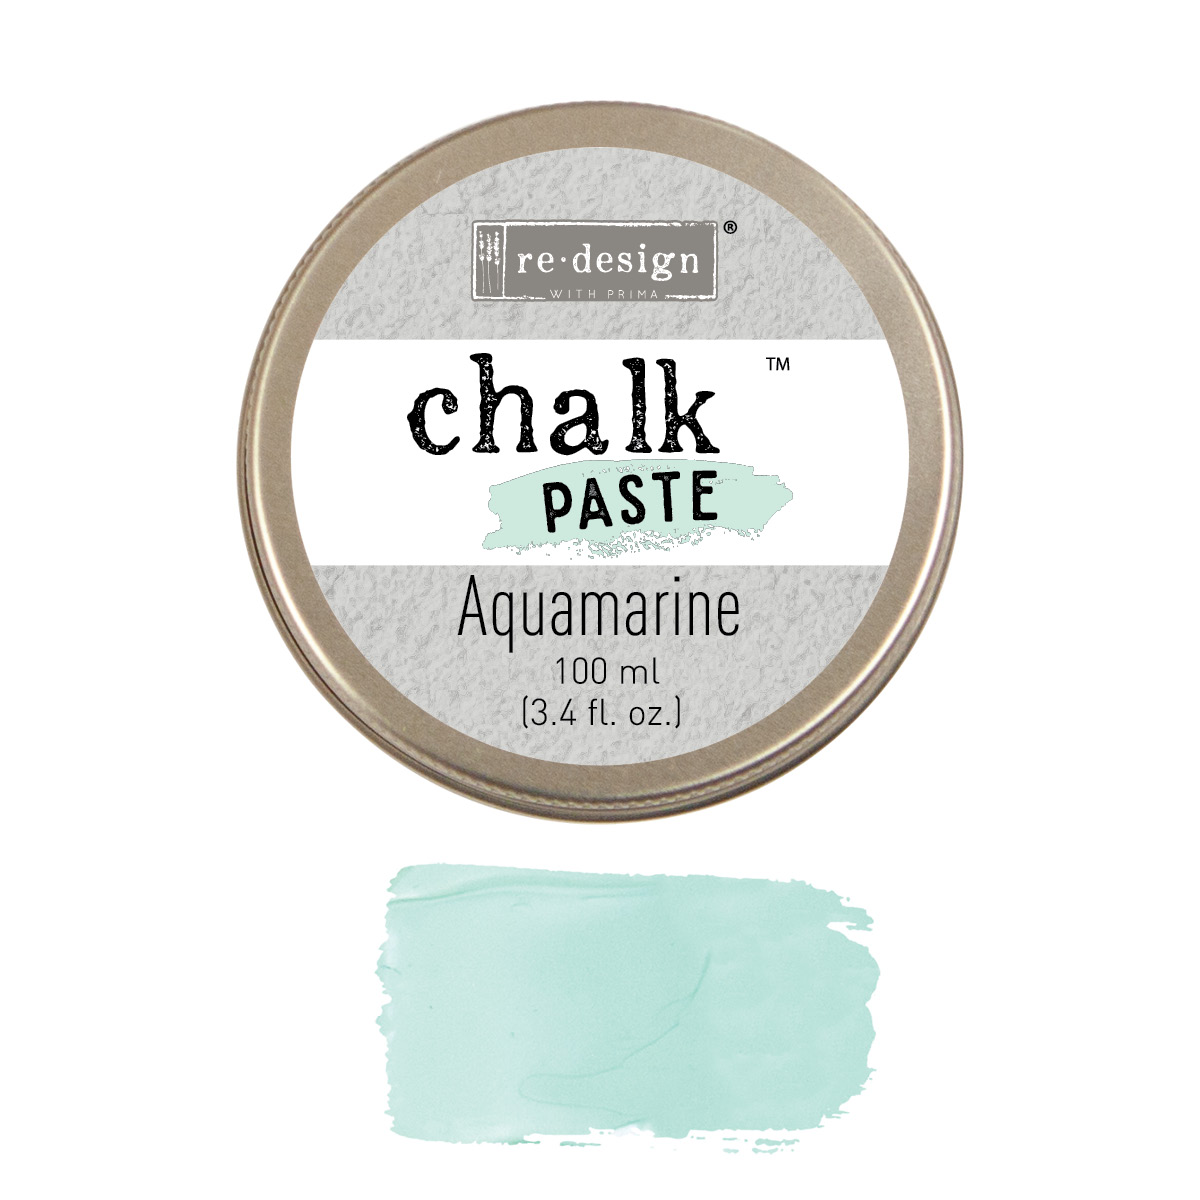 635220-Aquamarine Chalk Paste®  Here is the amazing video  Mark  created showing you how to achieve this look in a step by step fashion and the video is also filled with great tips too. Grab a cuppa and watch it here: